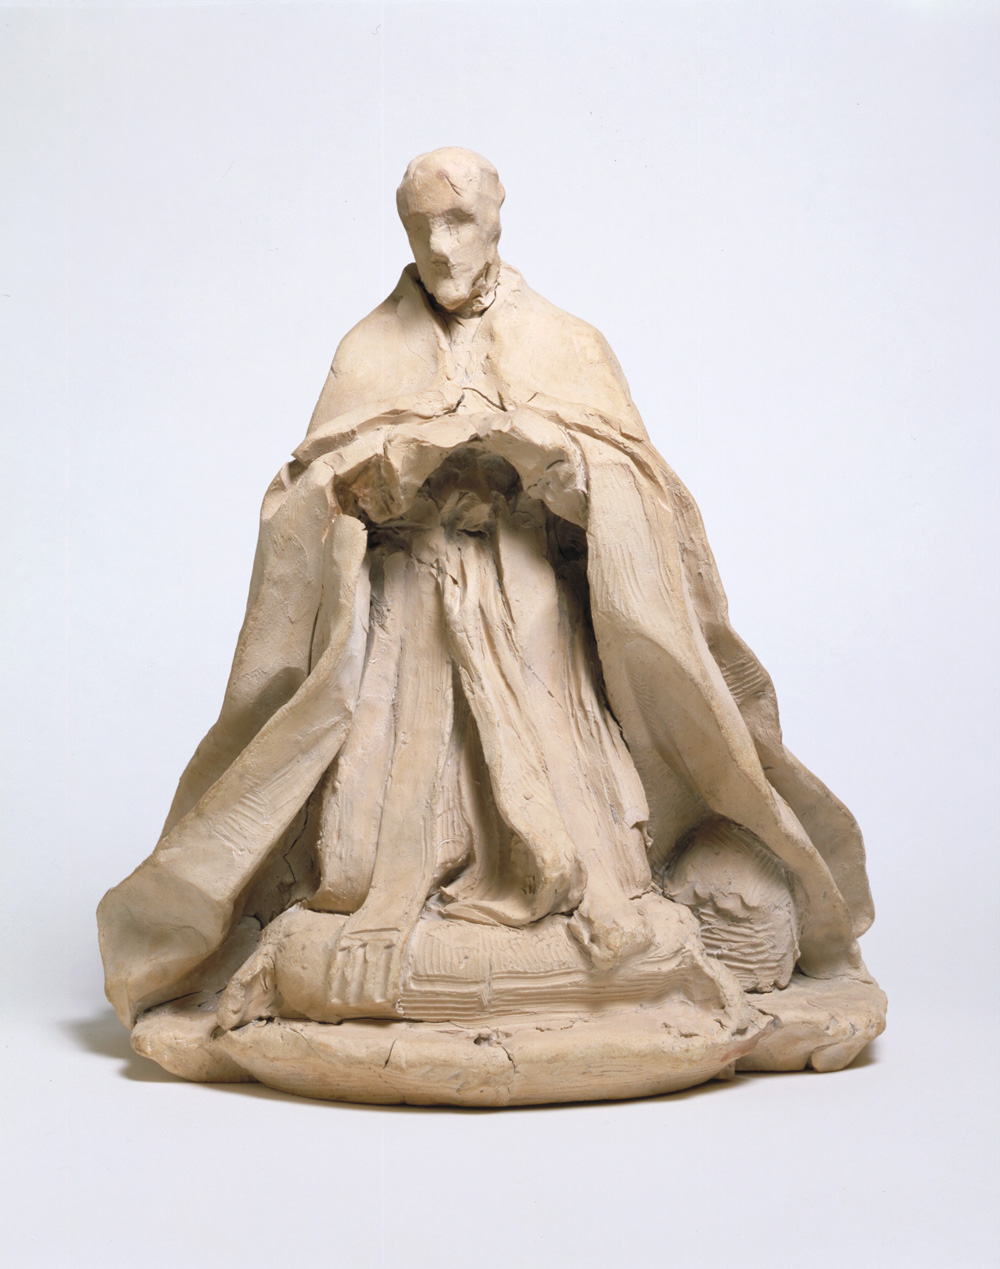 life and work of italian sculptor bernini Gian lorenzo bernini, el genio escultor del barroco thursday july 21st  the  sculptures he created reflect a detail that gives life to the pieces.